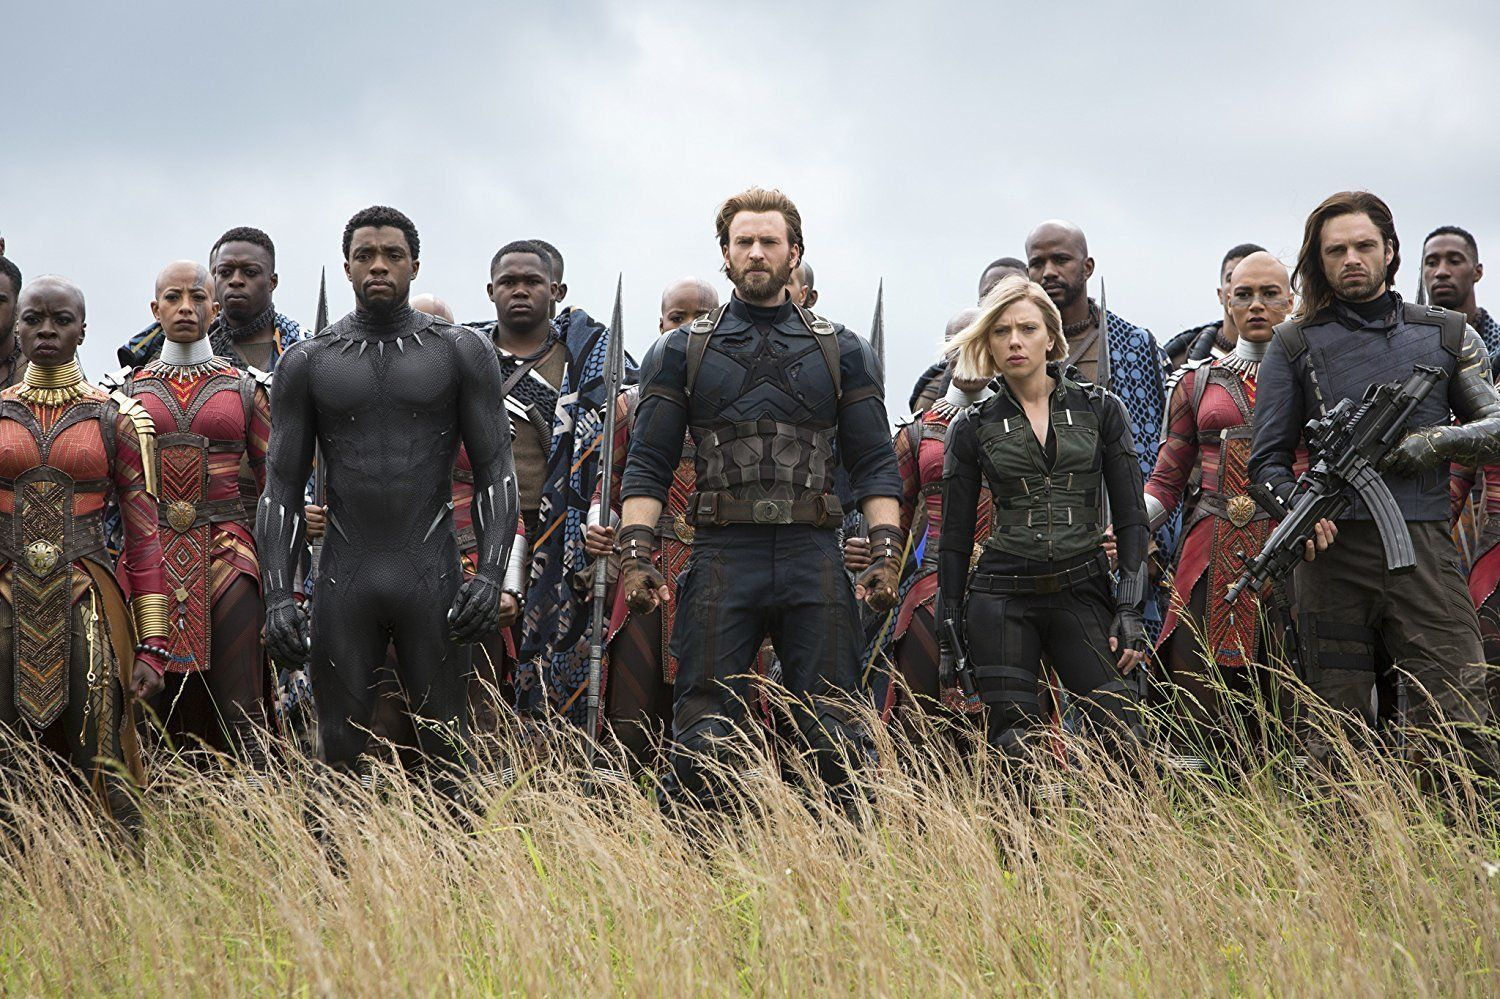 'Avengers: Infinity War' Preview Brings In A Marvel Record